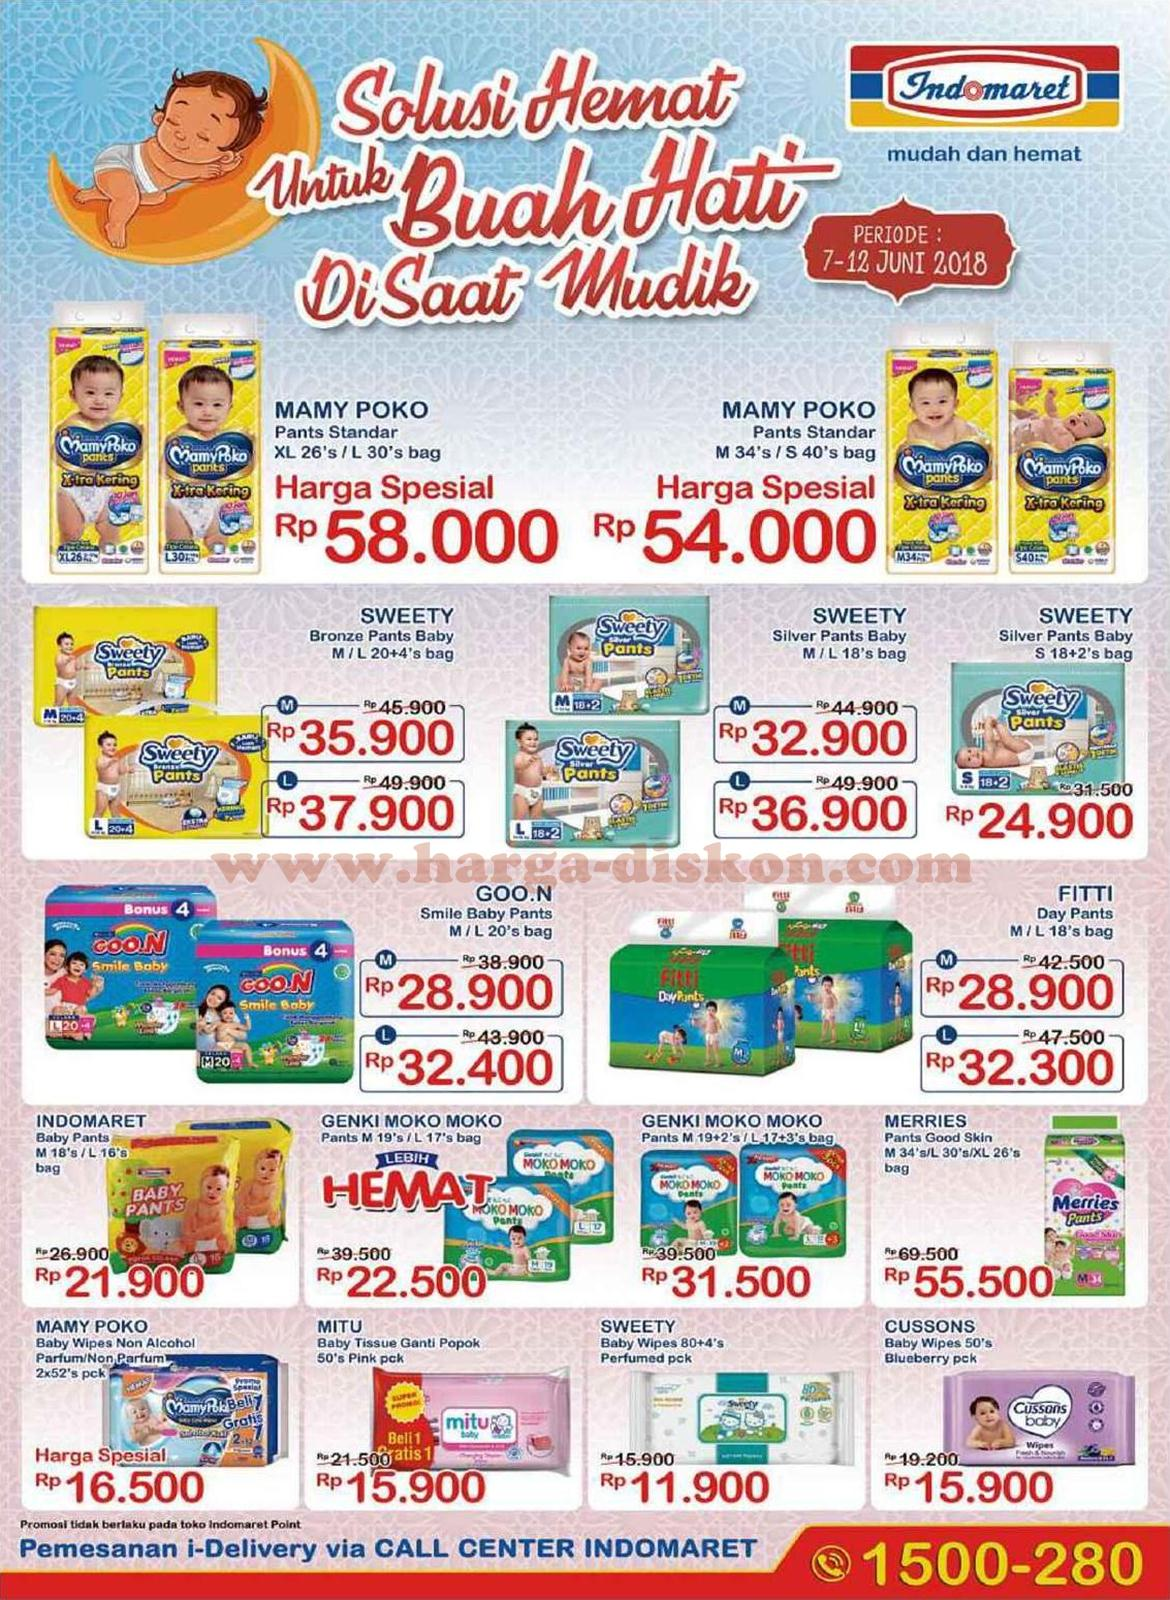 Promo Indomaret Produk Diapers Pampers Periode 7 12 Juni 2018 Vouher Popok